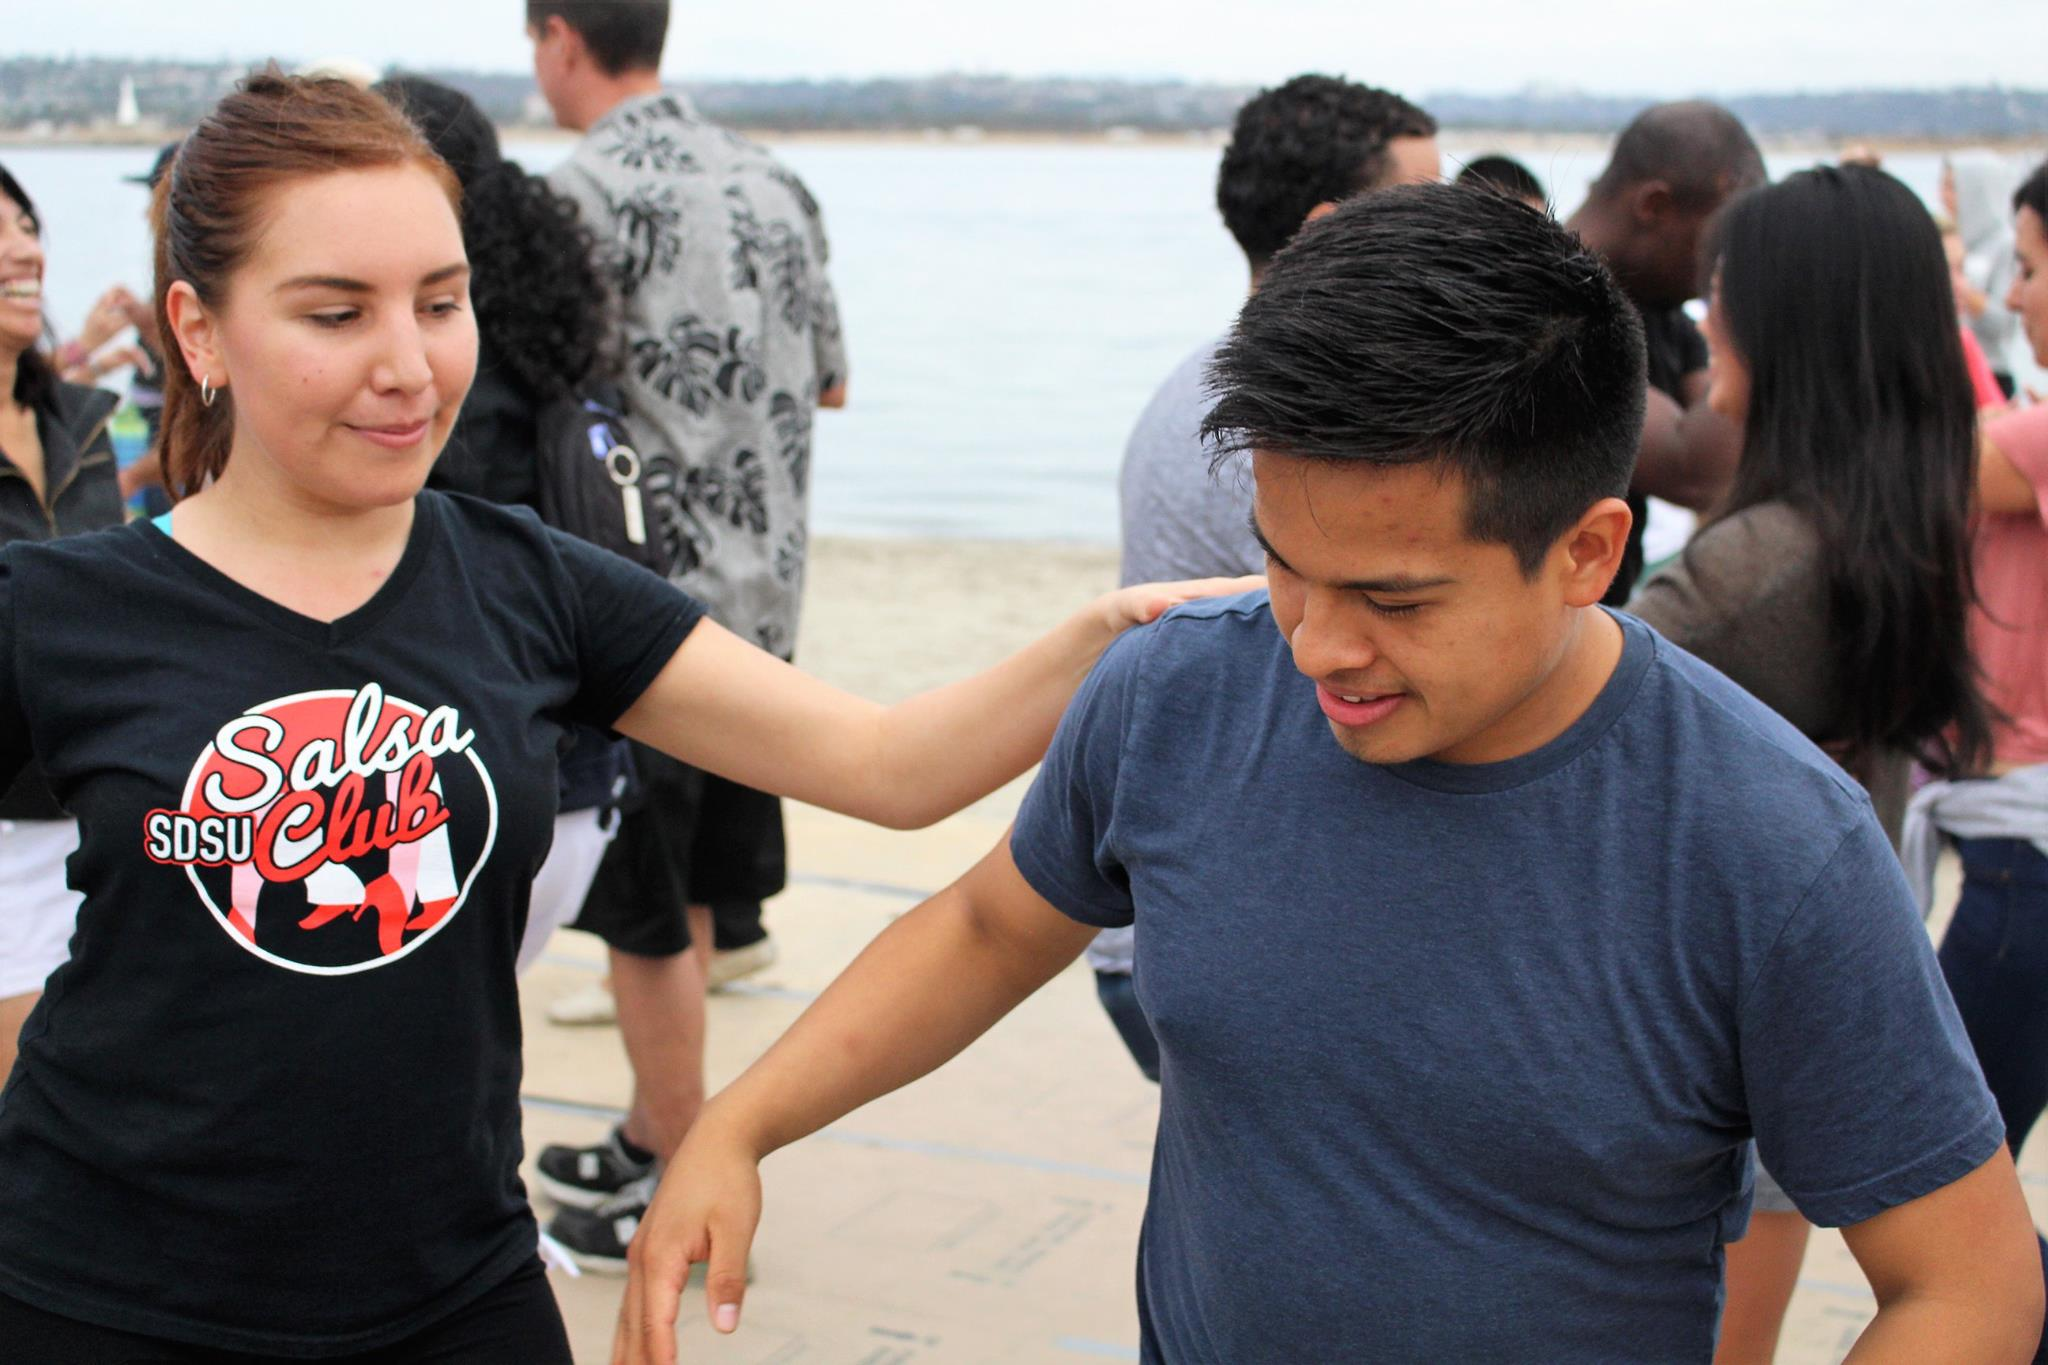 Social Dancing at an event called Salsa On the Beach